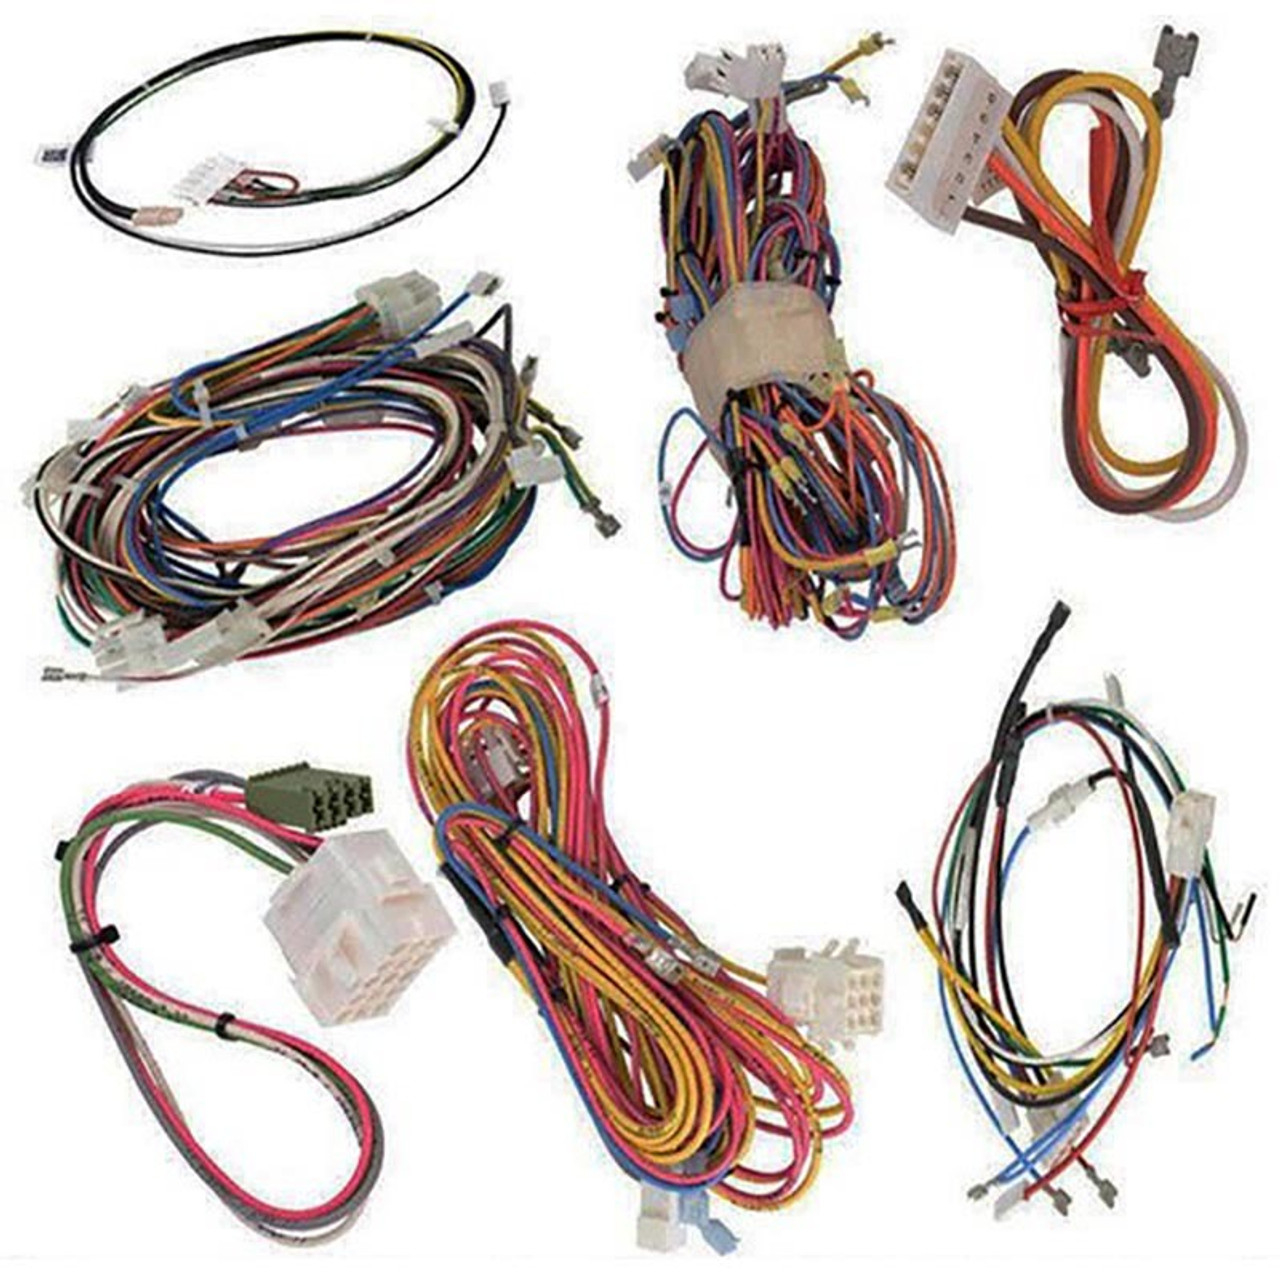 hight resolution of wiring harness reviews wiring diagram home centech wiring harness reviews